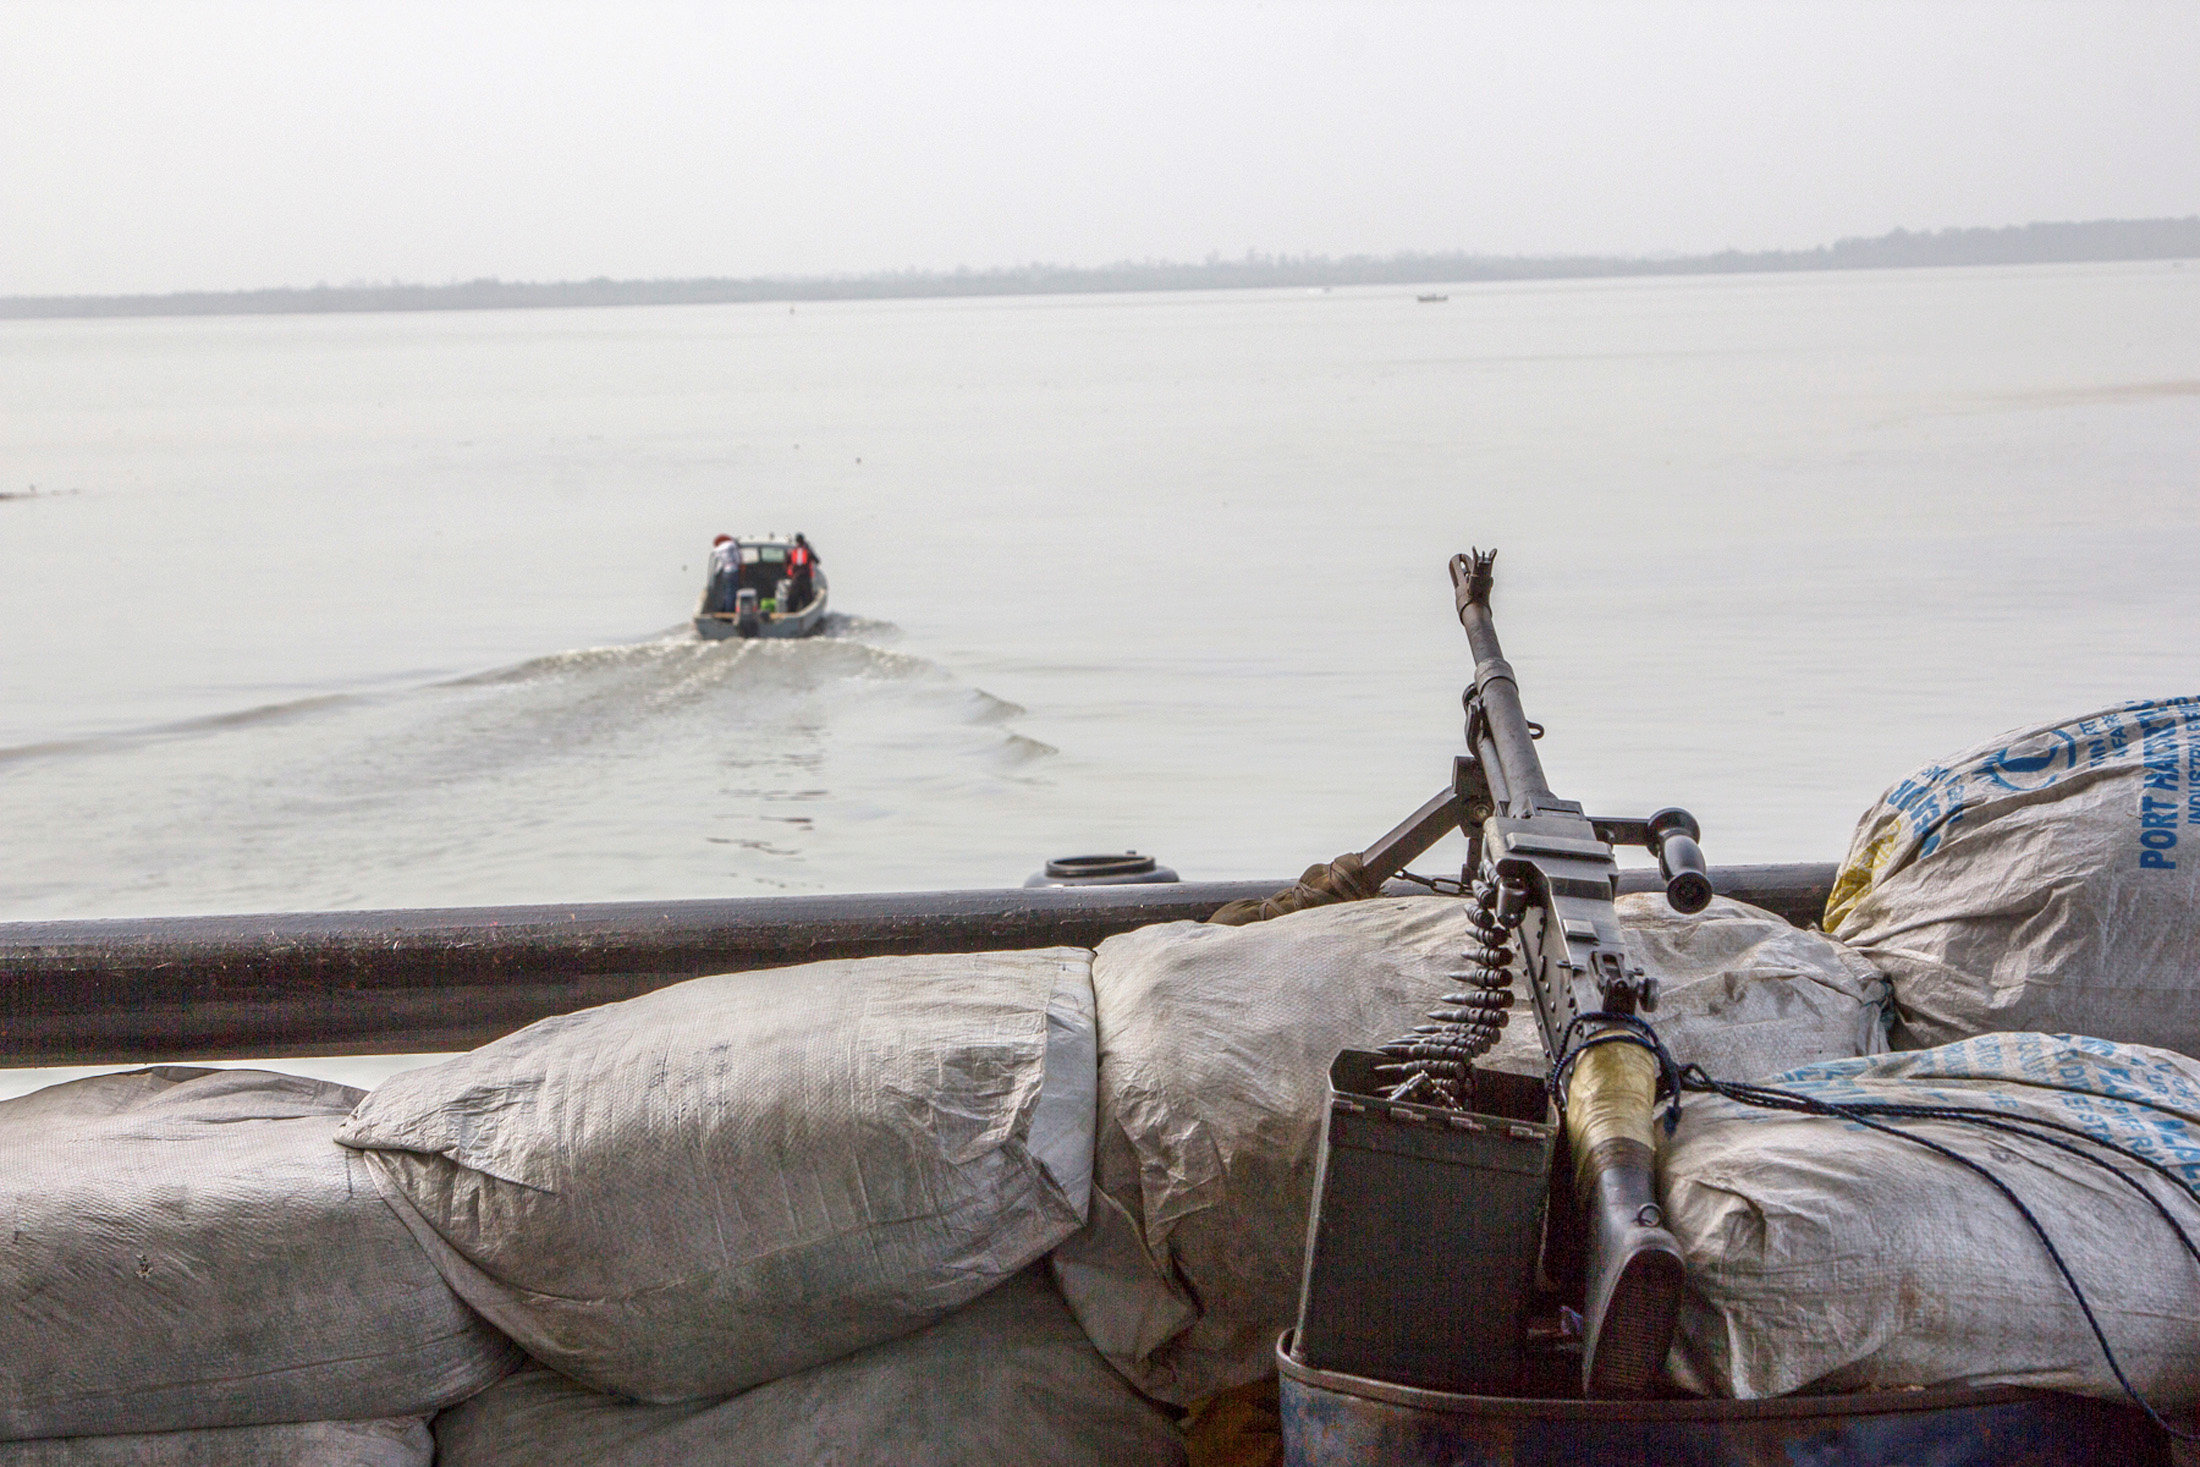 A machine gun is seen on a sandbag on a boat off the Atlantic coast in Nigeria's Bayelsa state